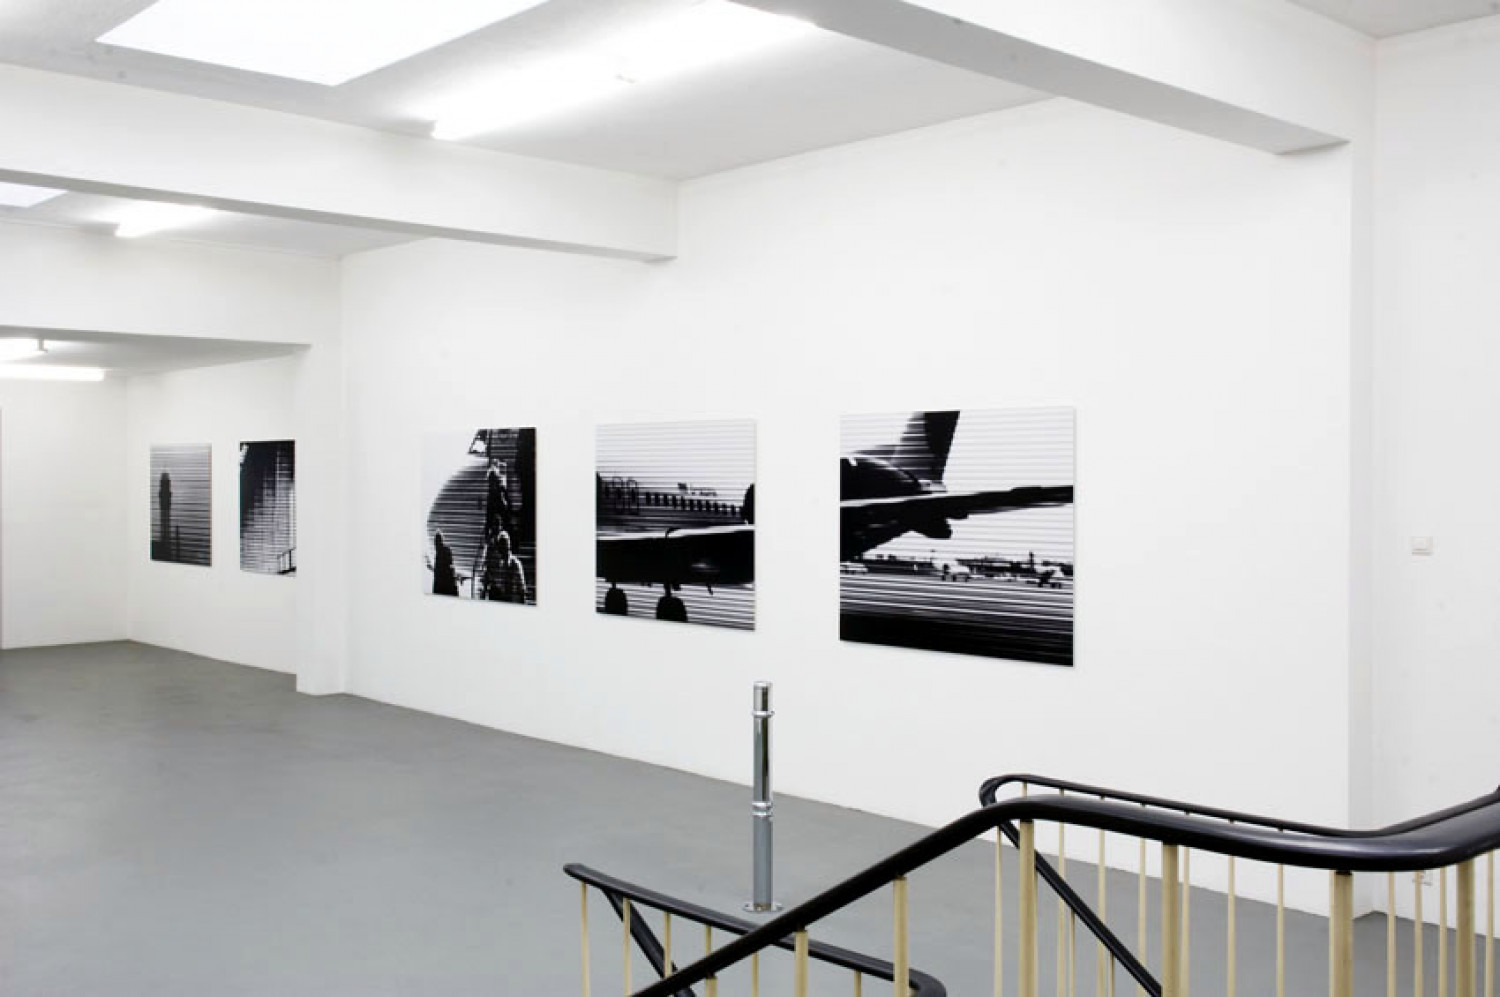 Bettina Pousttchi, 'Take Off', Installation view, 2005